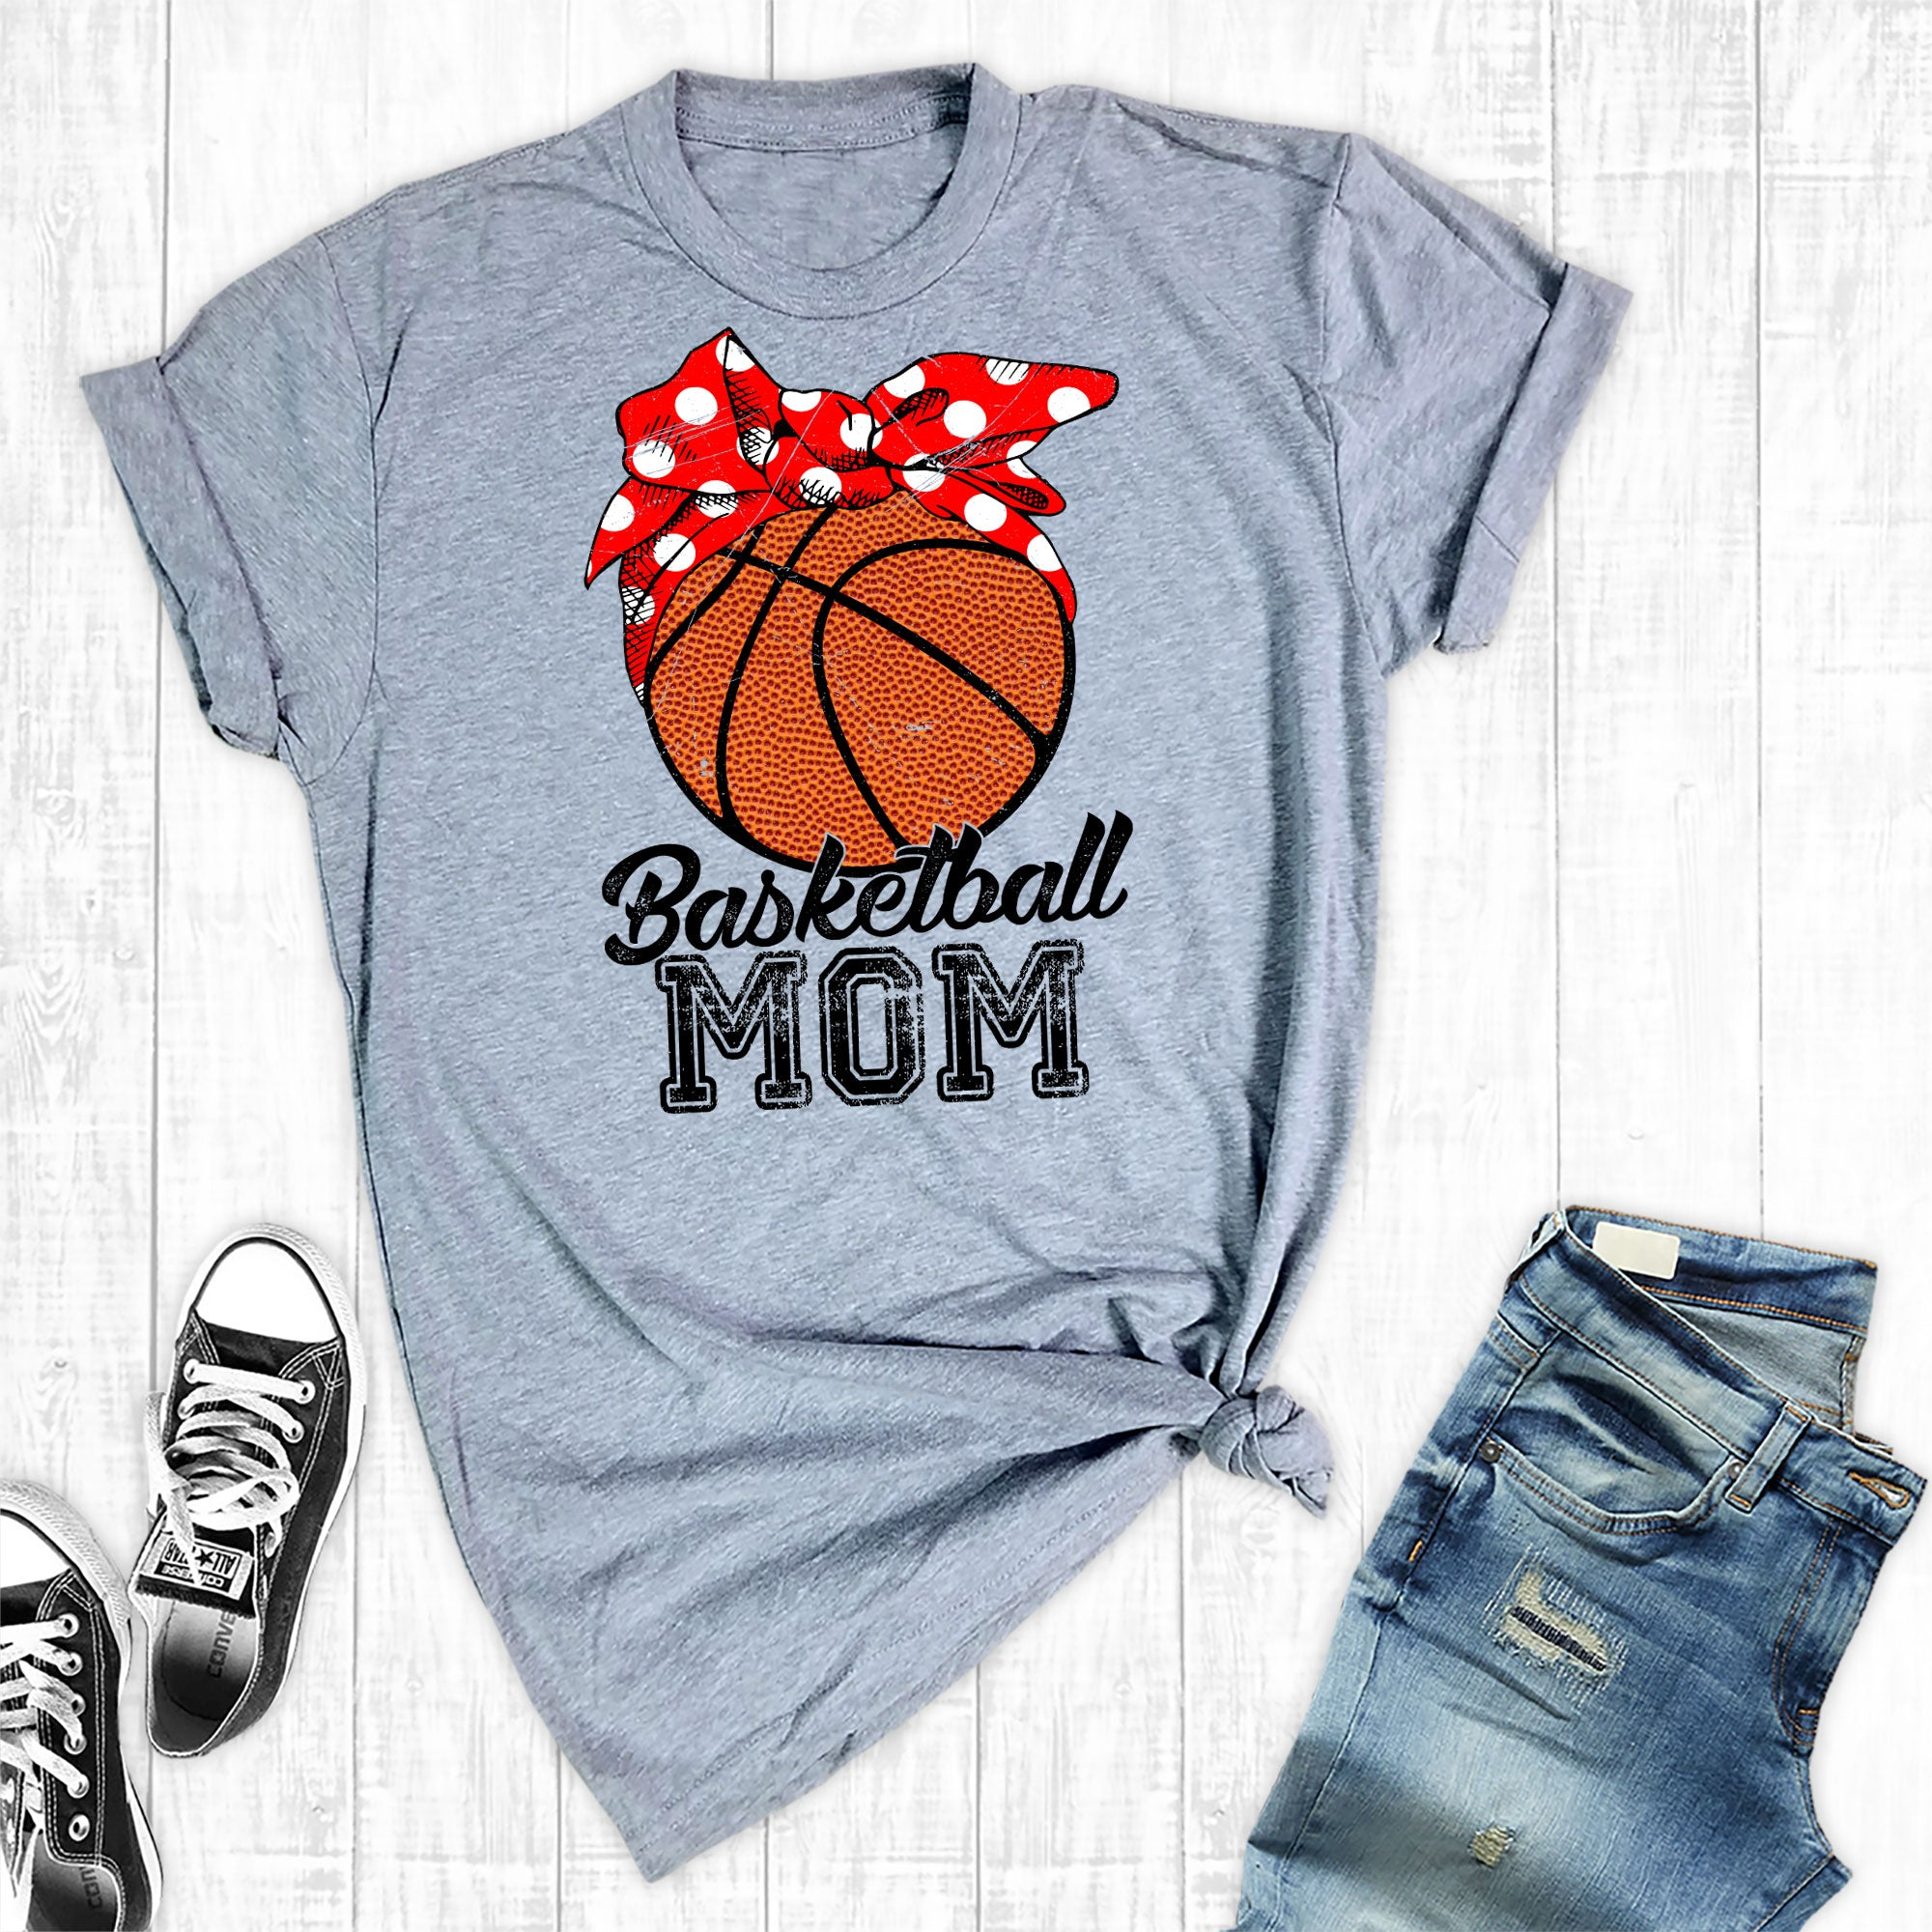 Bandana Basketball Mom